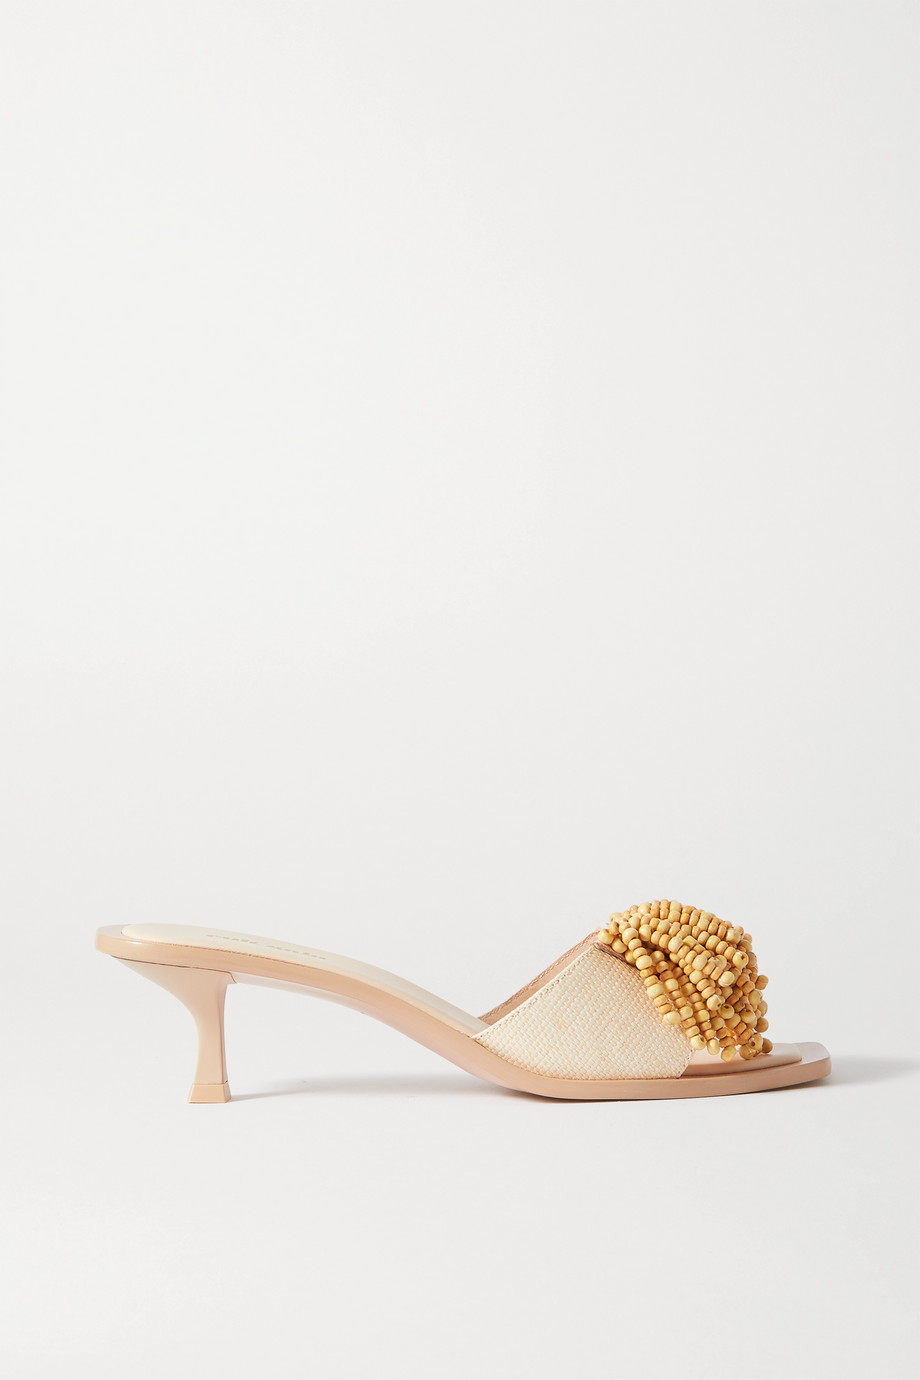 Cult Gaia Uma beaded raffia and leather mules